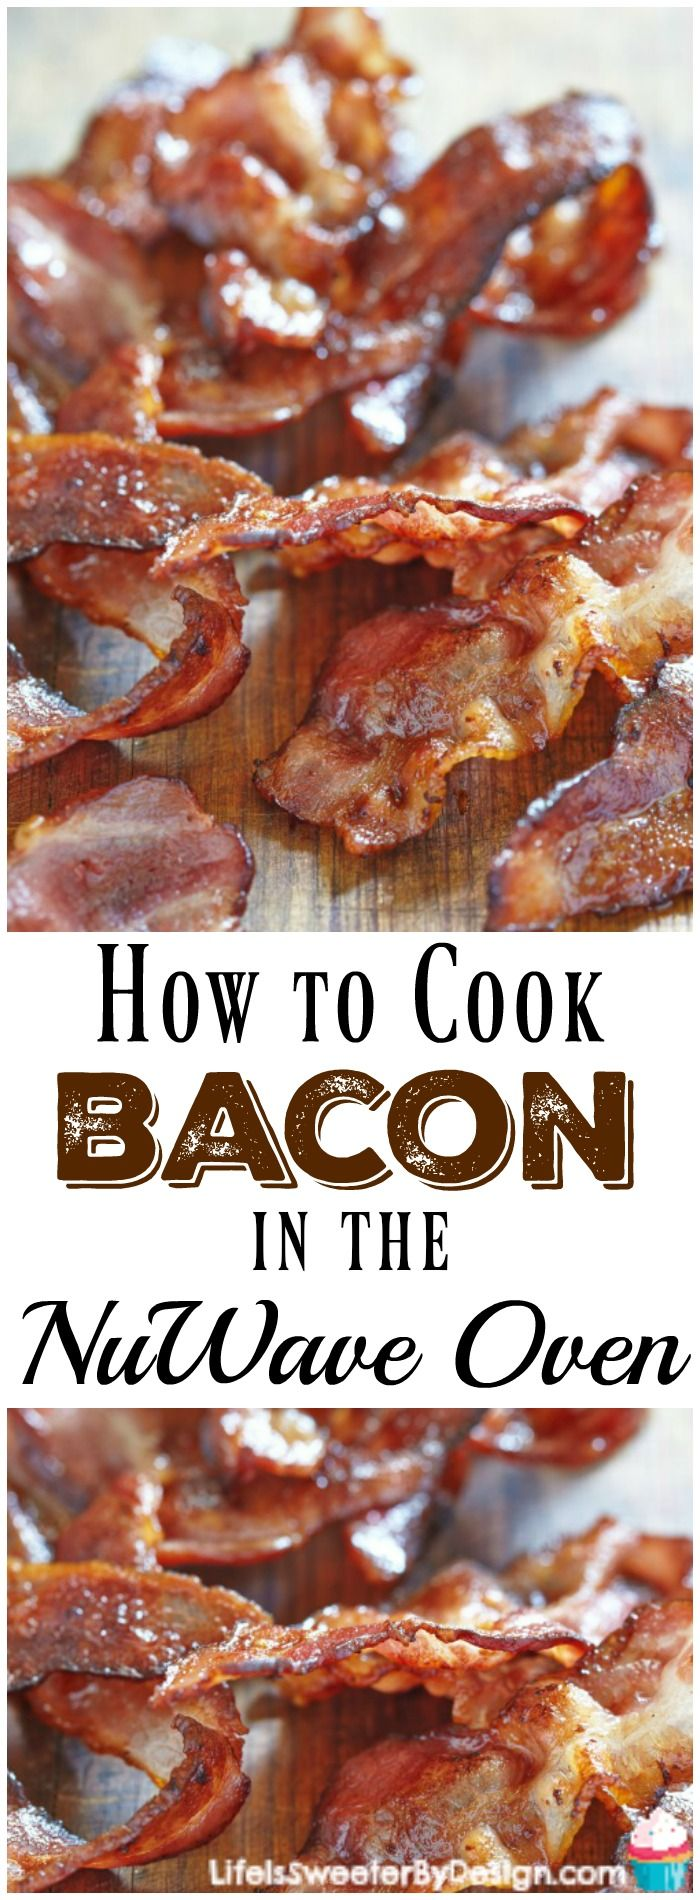 Find Out How To Cook Bacon In The Nuwave Oven It Is The Easiest Way